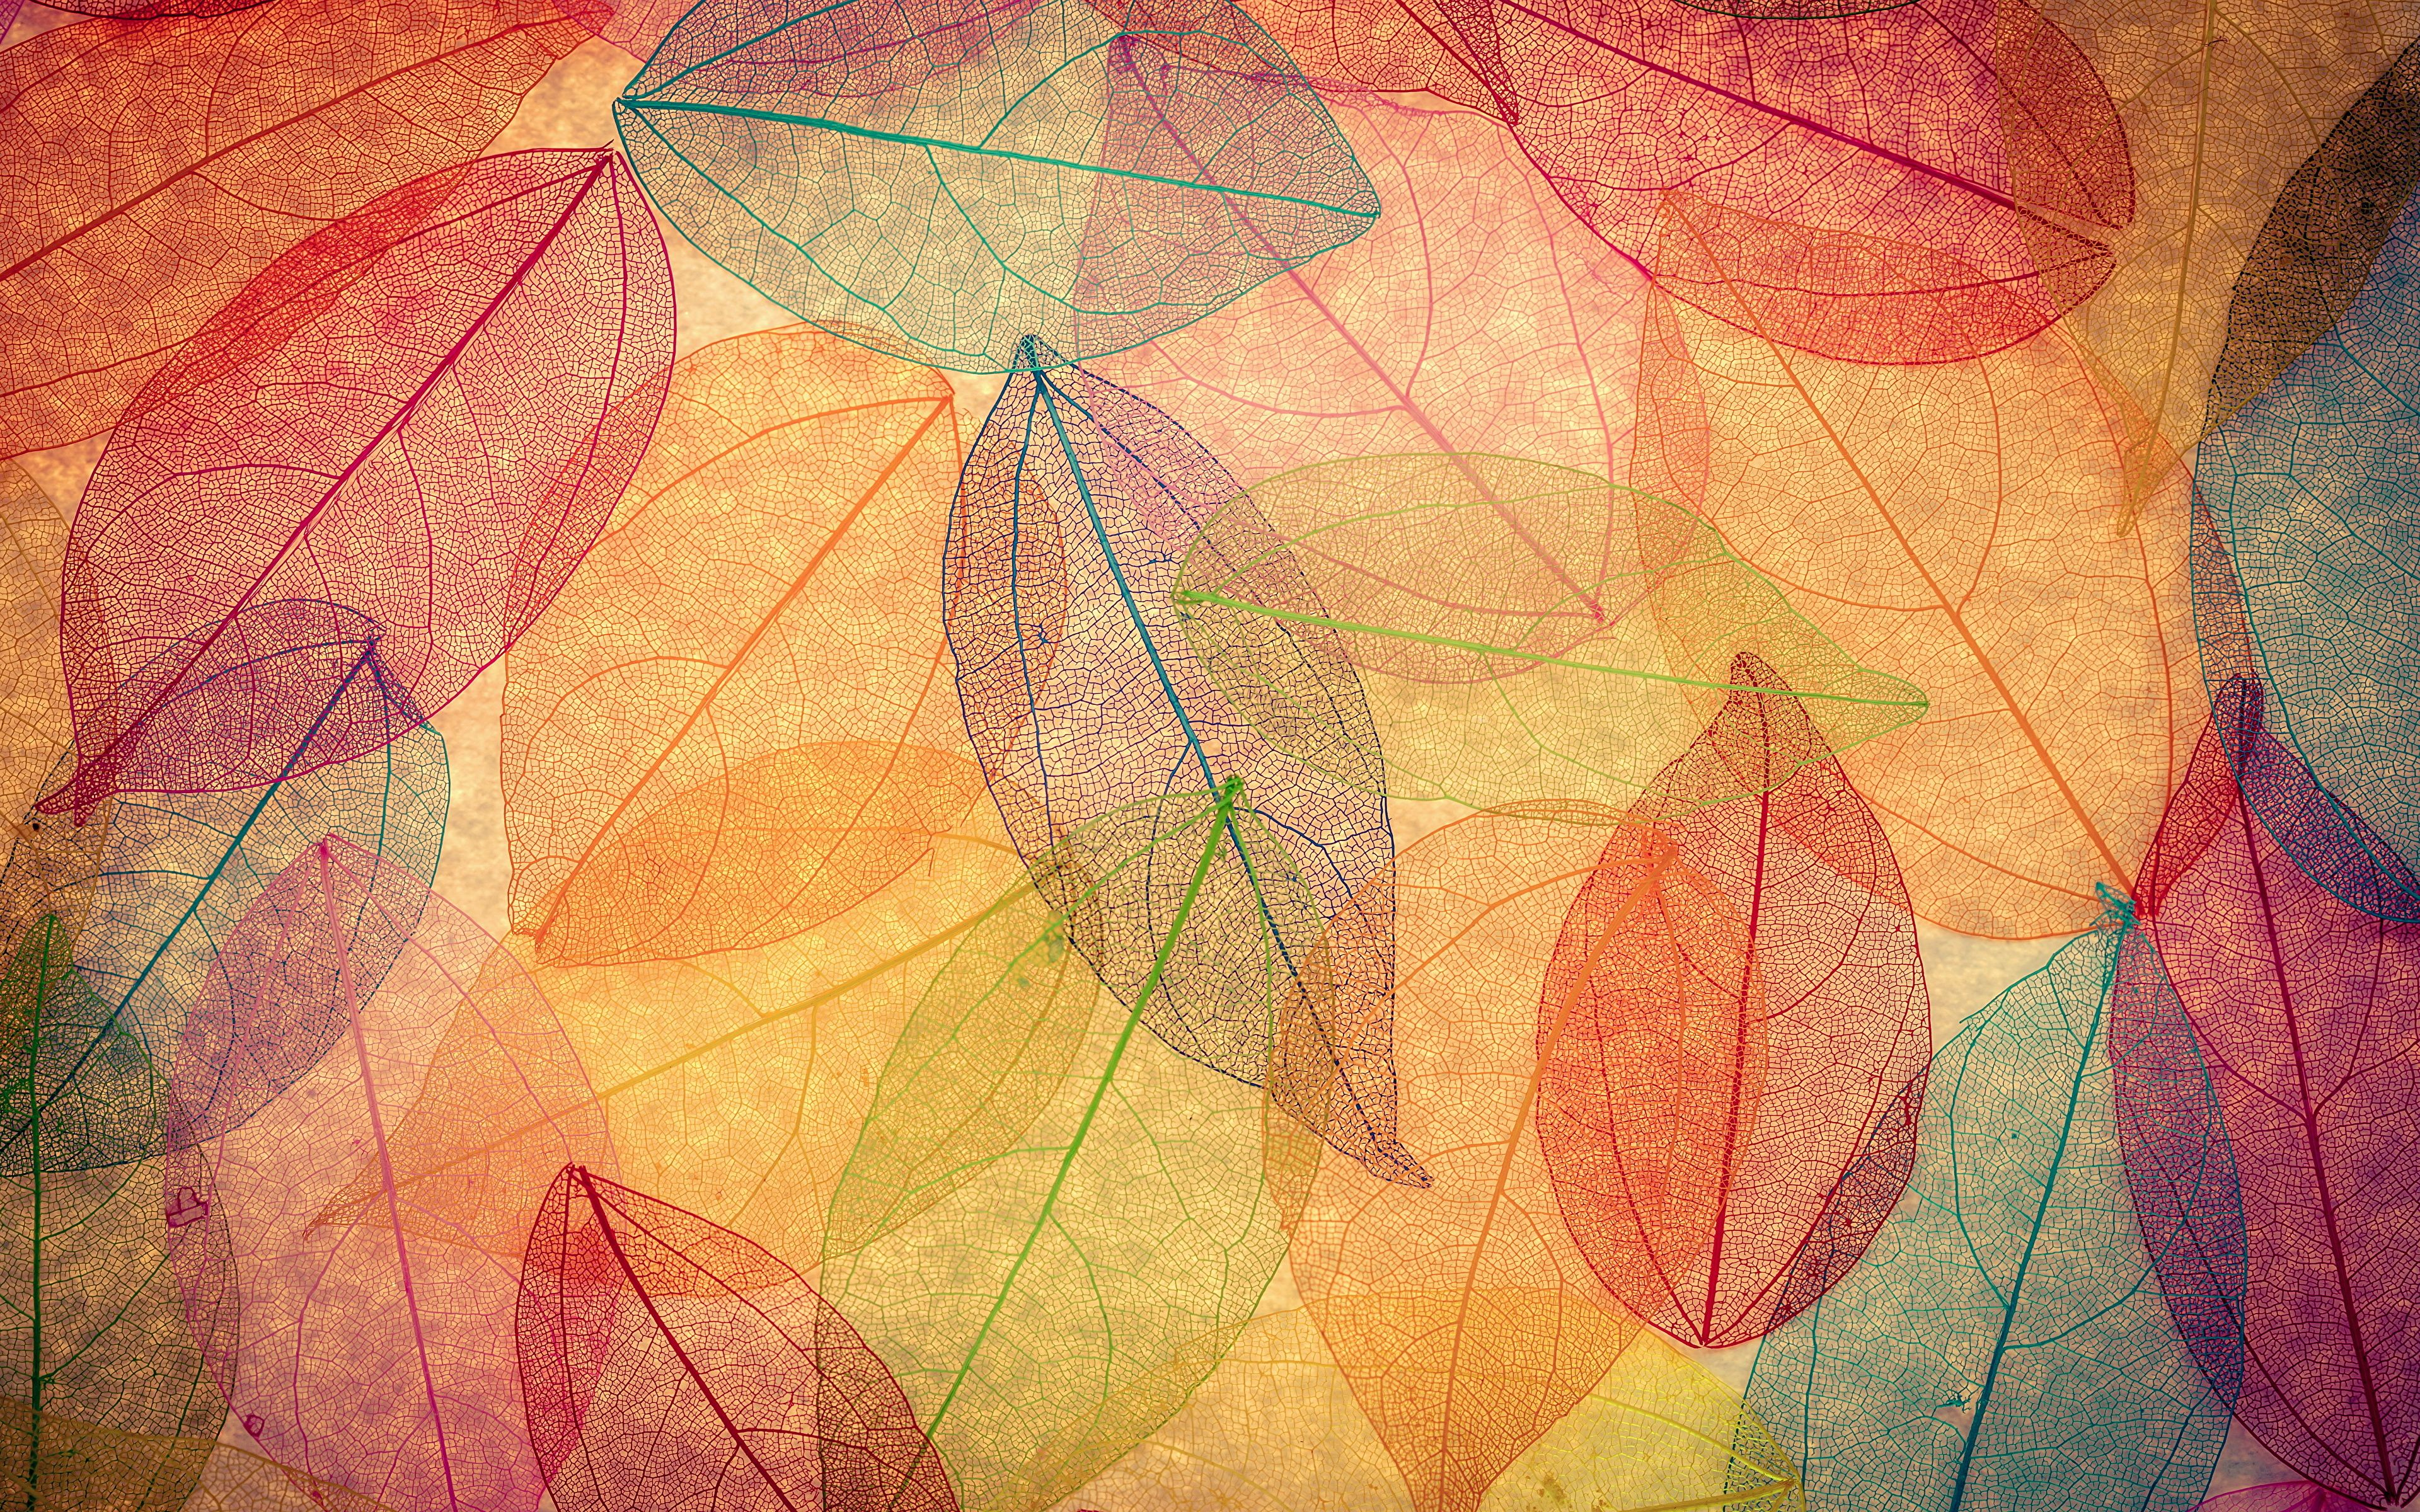 3840x2400 Wallpaper Foliage autumn leaves transparent abstract 3840x2400